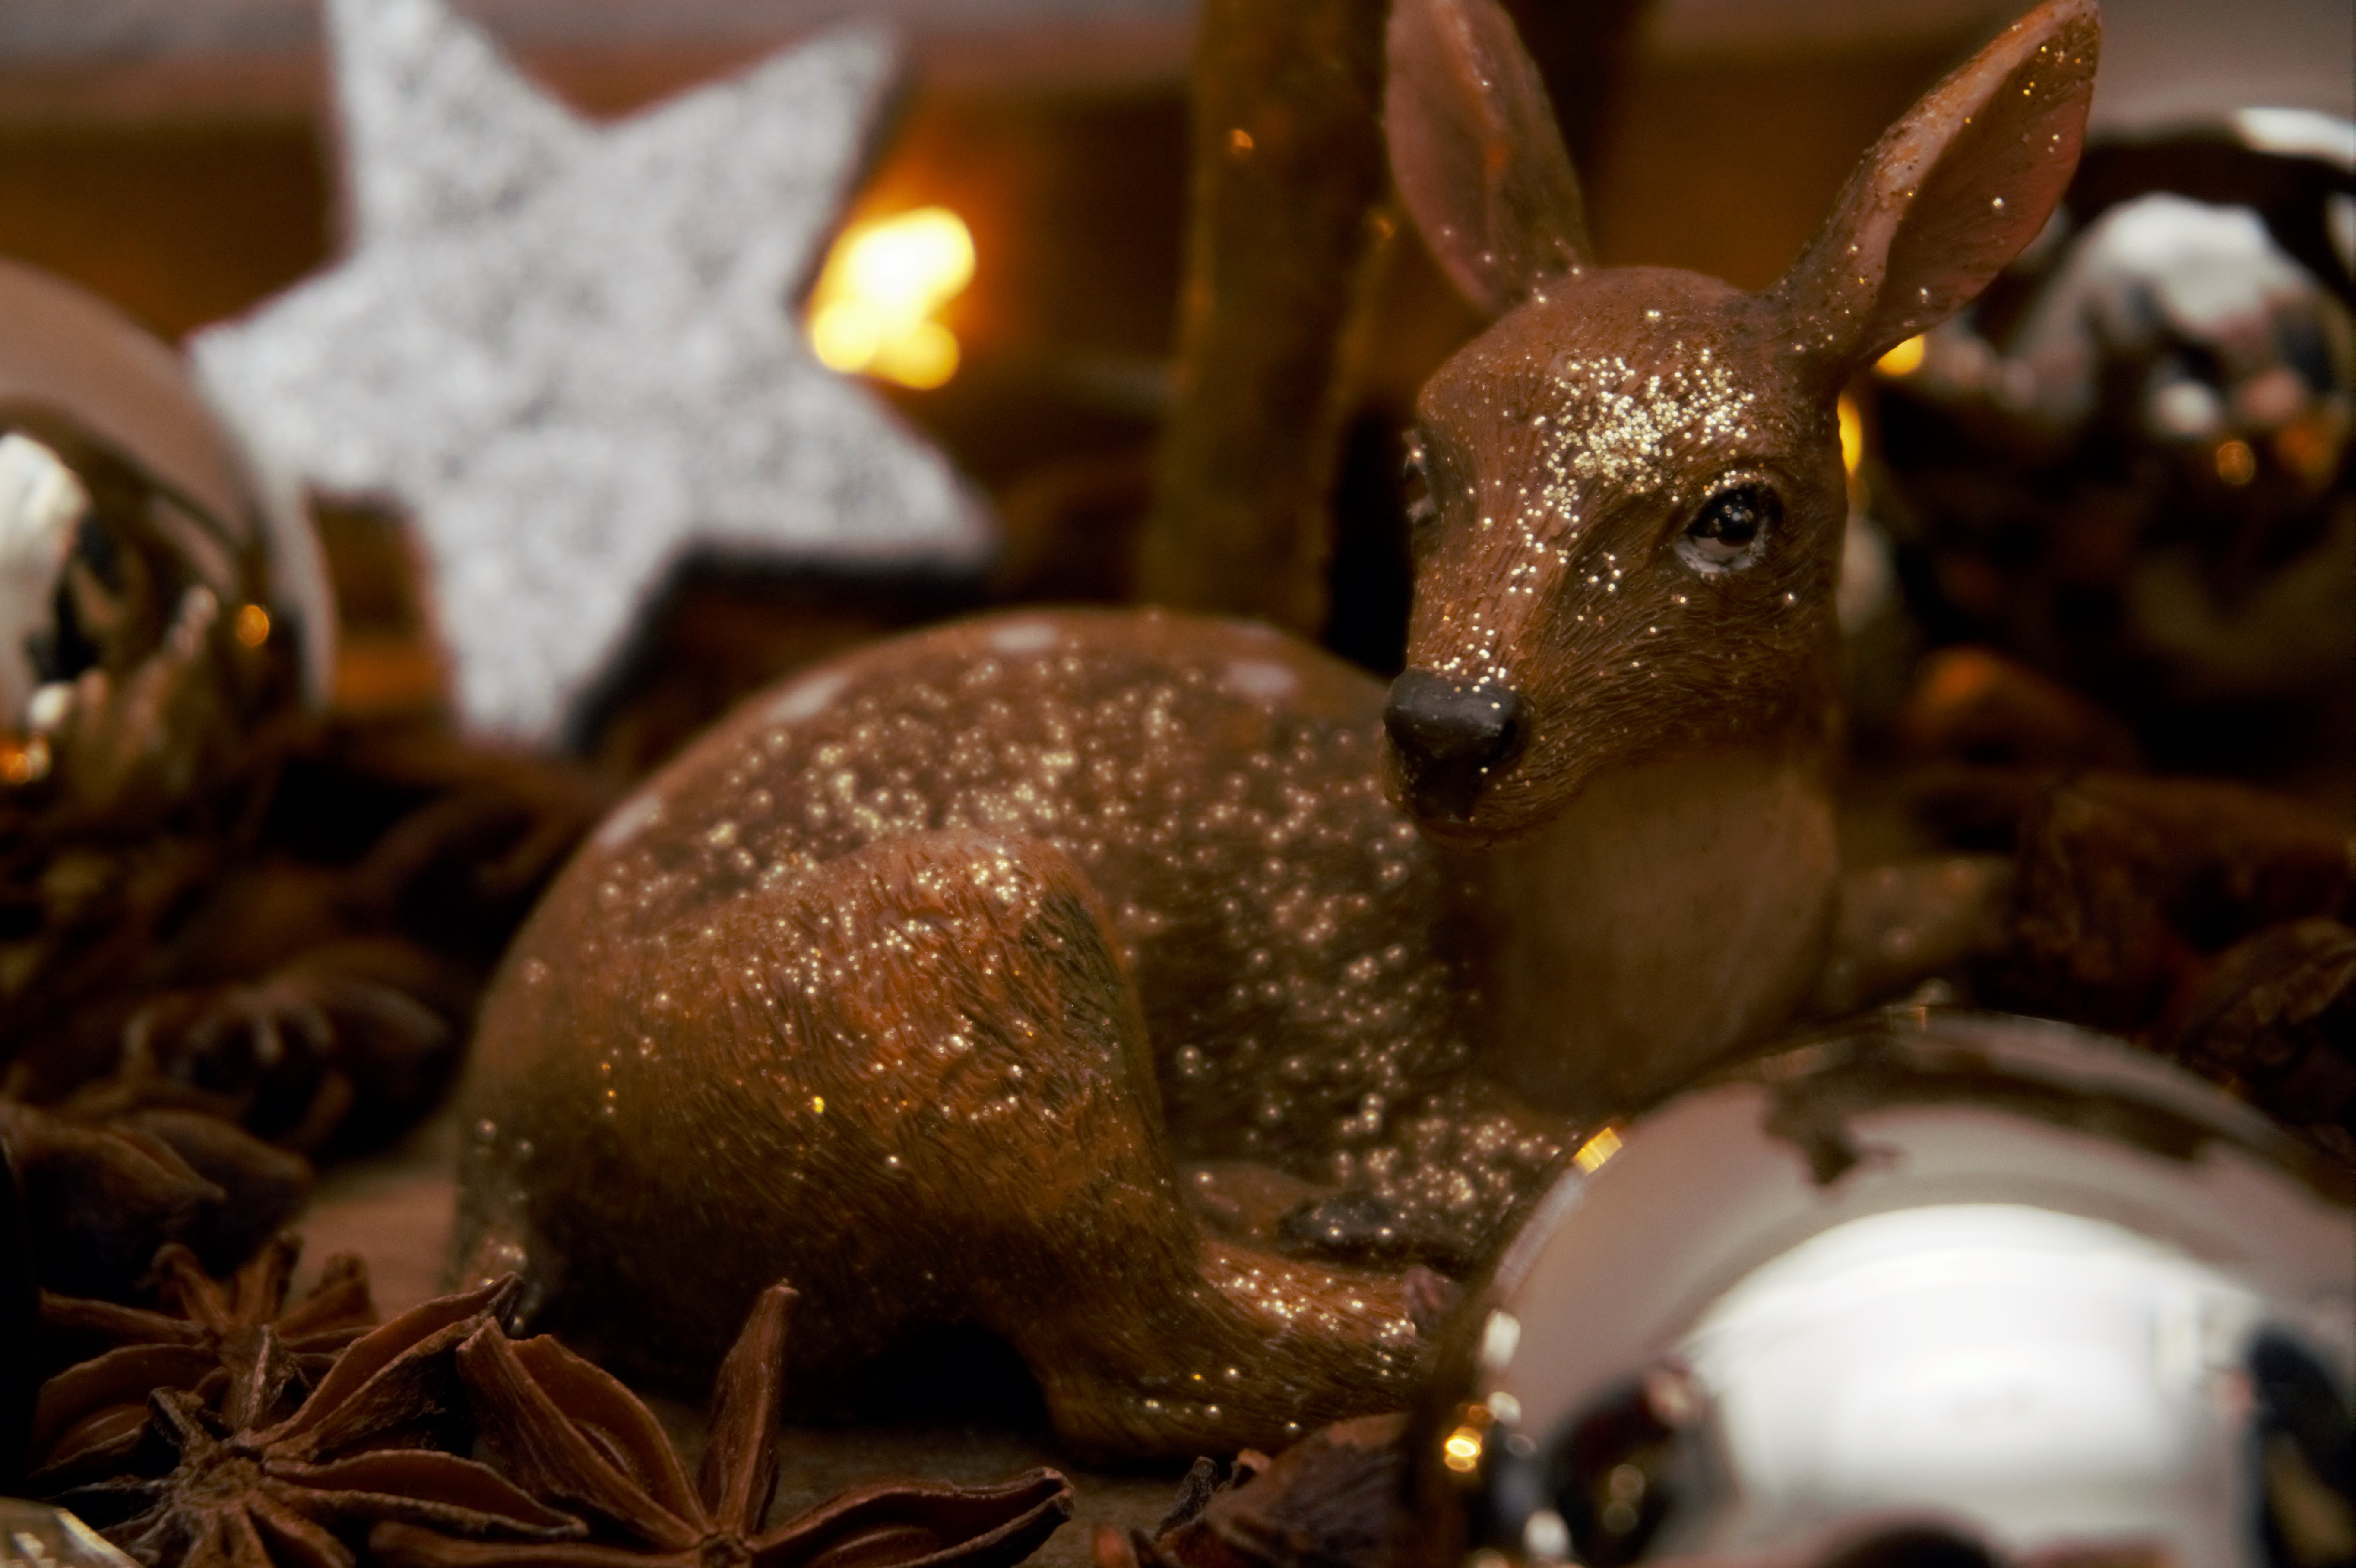 Brown Deer Figurine and White Star Decor